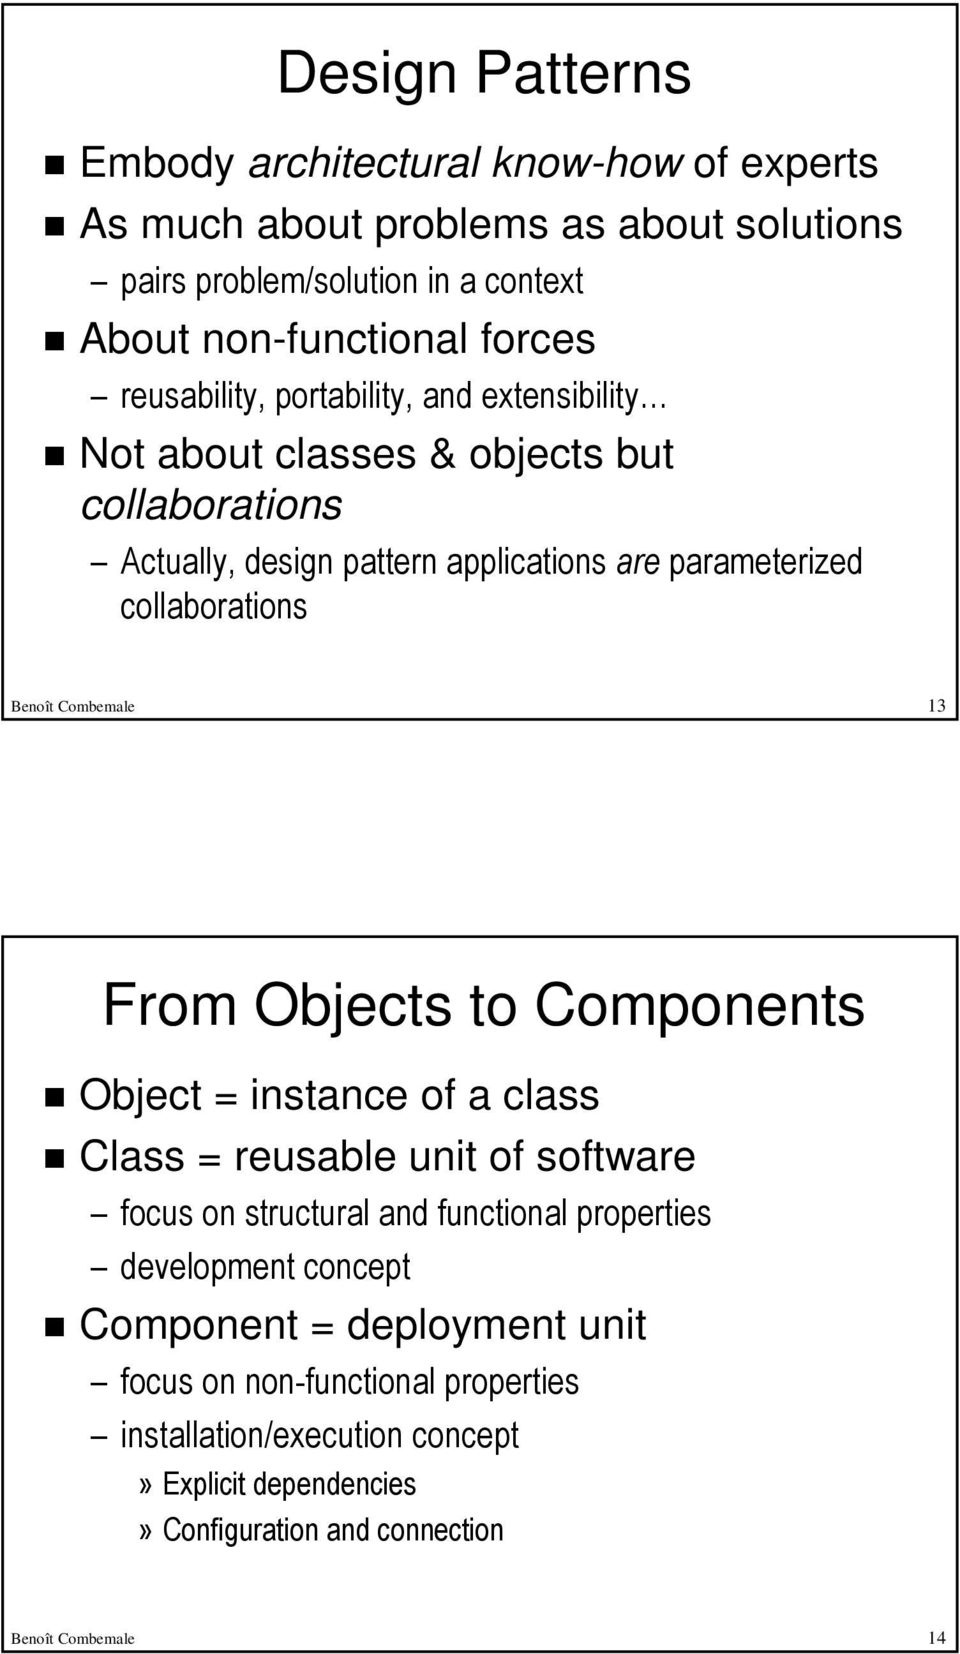 Benoît Combemale 13 From Objects to Components Object = instance of a class Class = reusable unit of software focus on structural and functional properties